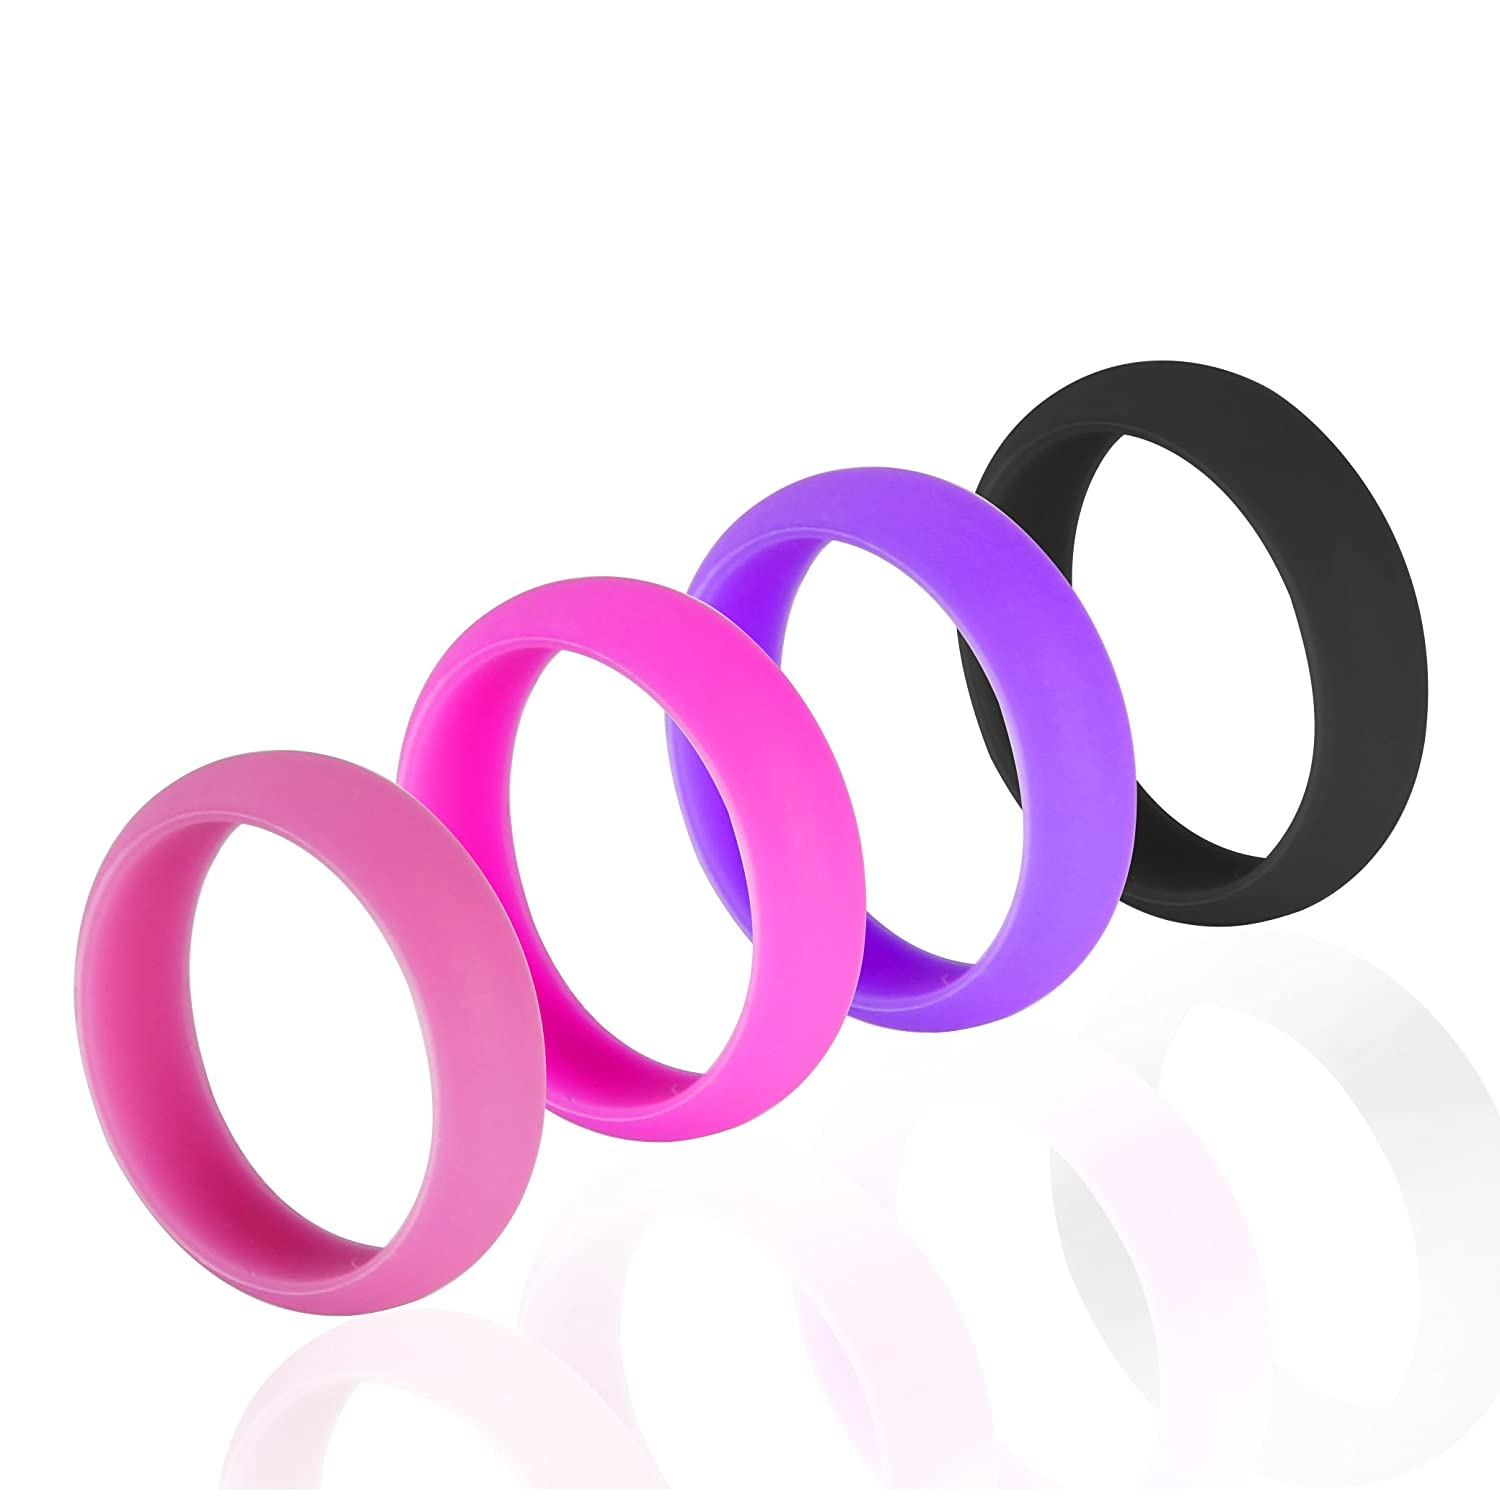 Amazon.com: Silicone Wedding Ring Band Premium Quality for Active ...